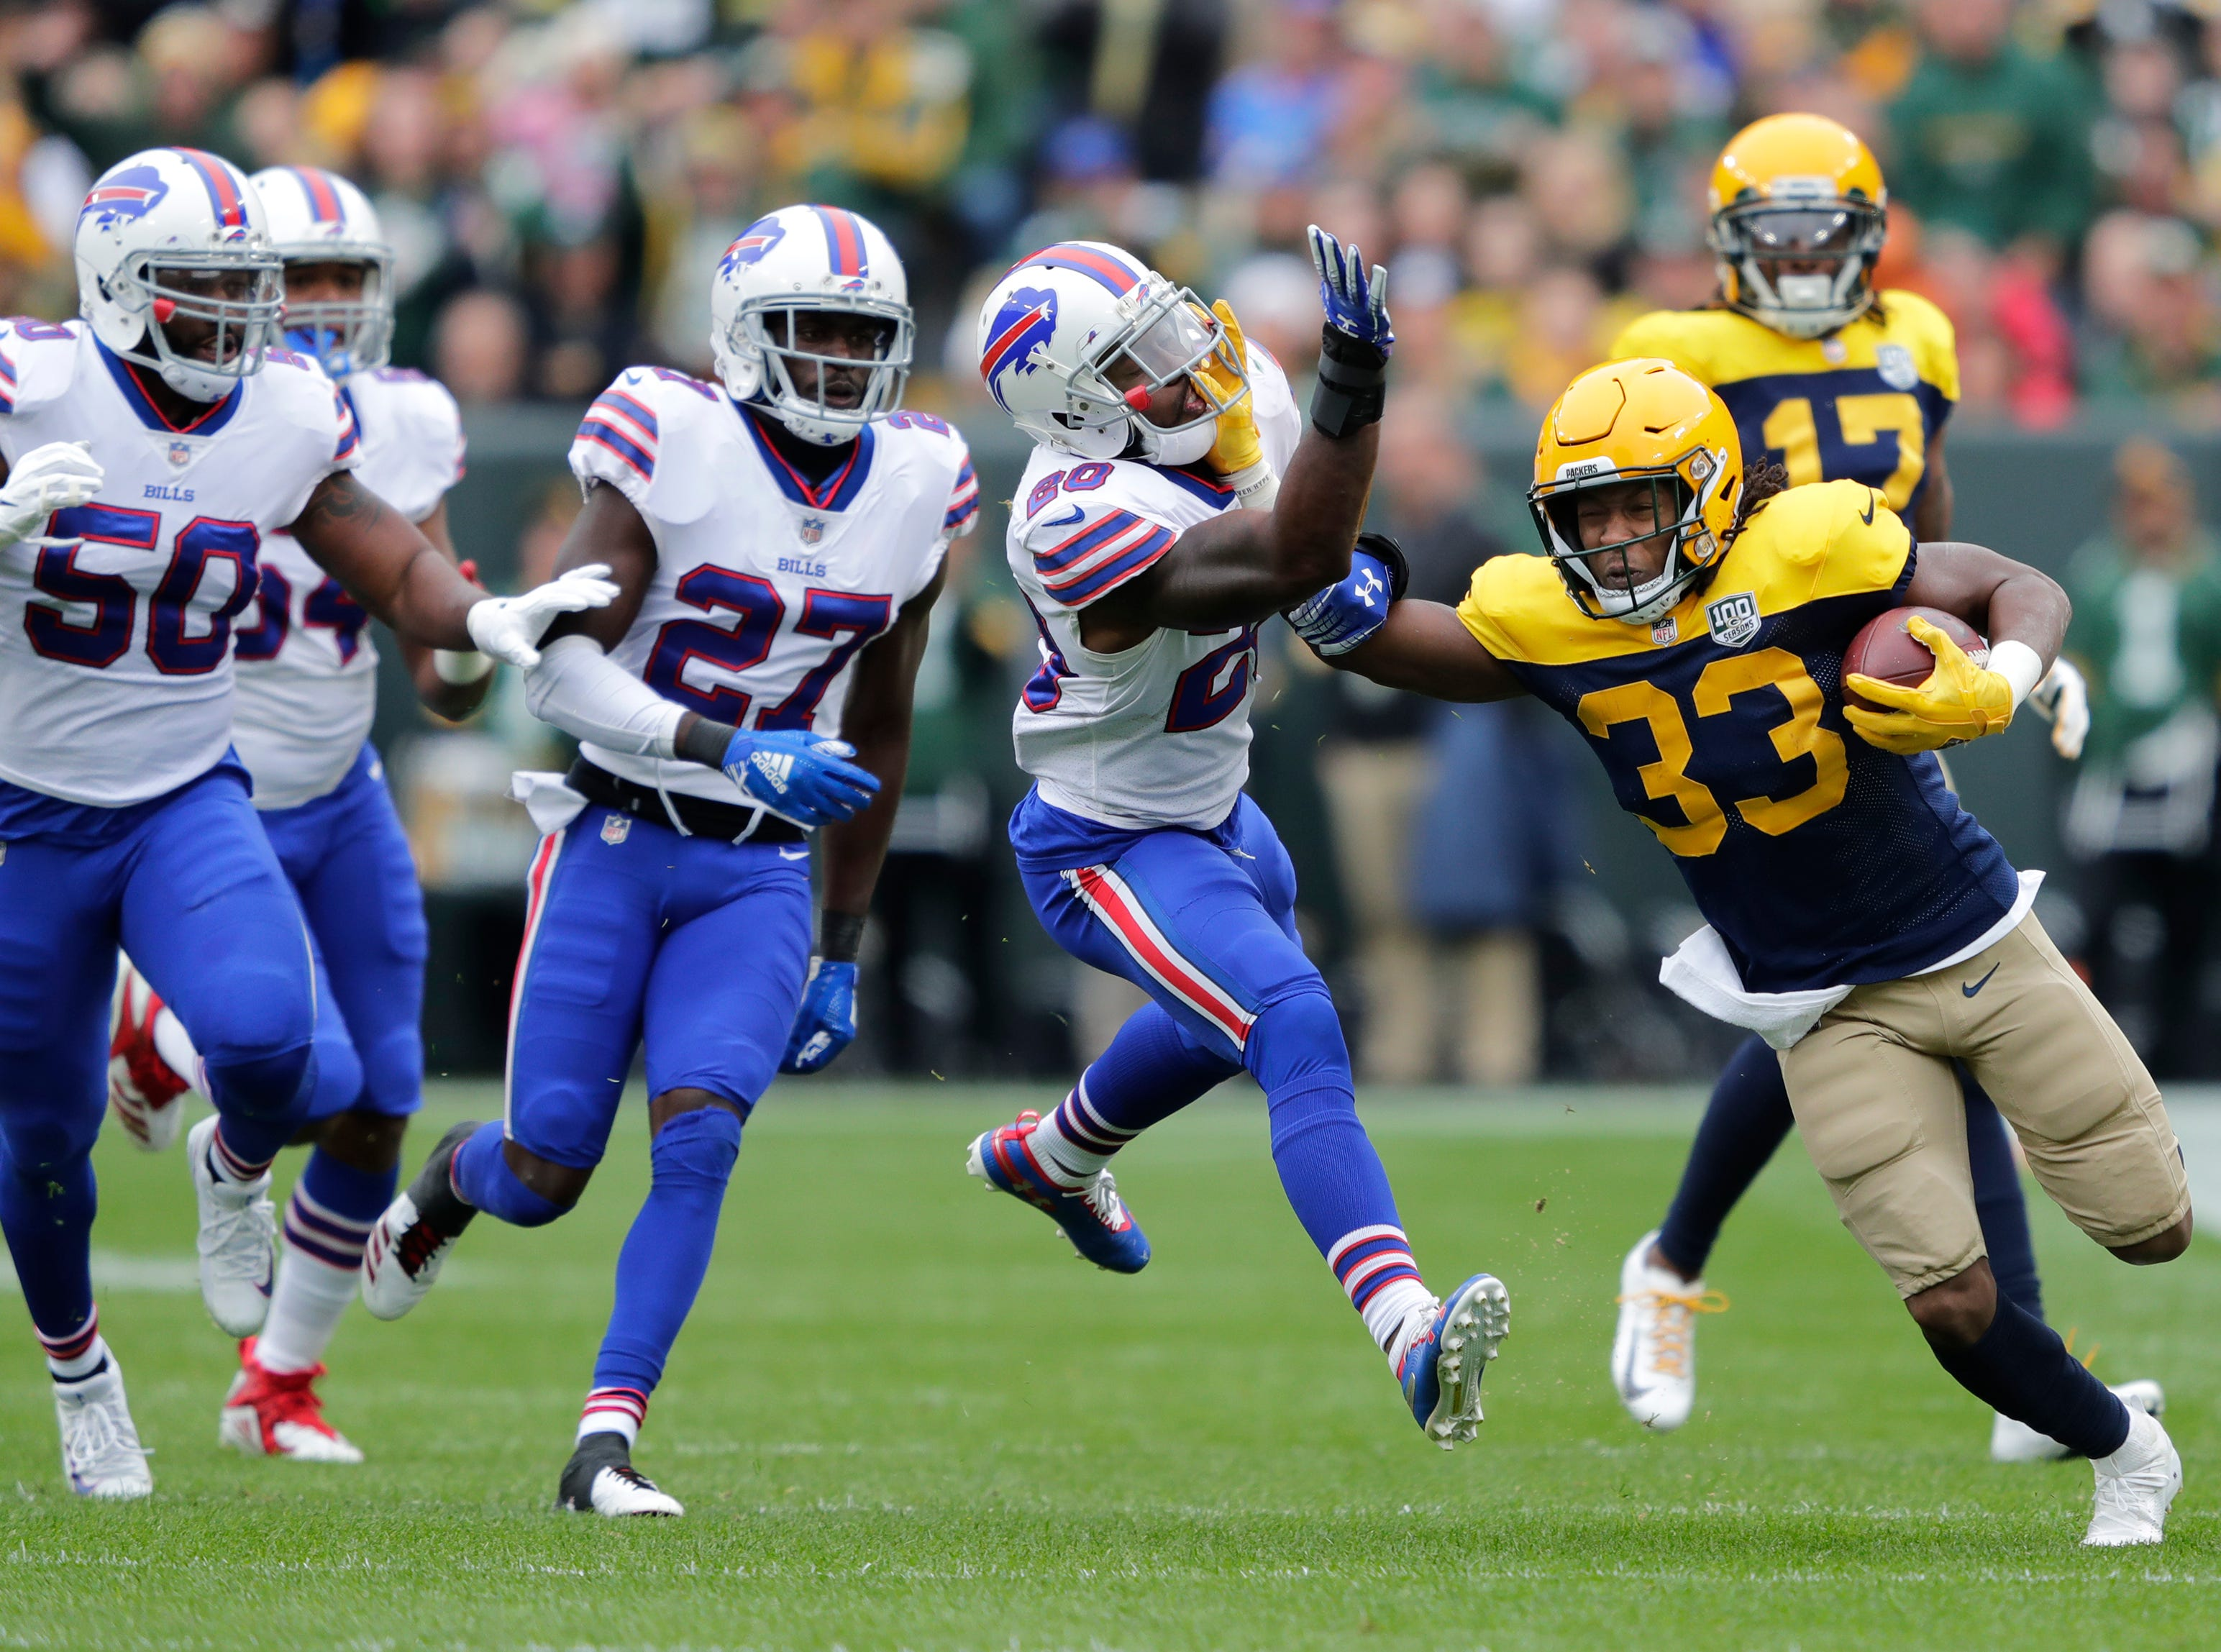 Green Bay Packers running back Aaron Jones (33) stiff arms Buffalo Bills defensive back Rafael Bush (20) on a long first down run in the first quarter during their football game Sunday, Sept. 30, 2018, at Lambeau Field in Green Bay, Wis. 